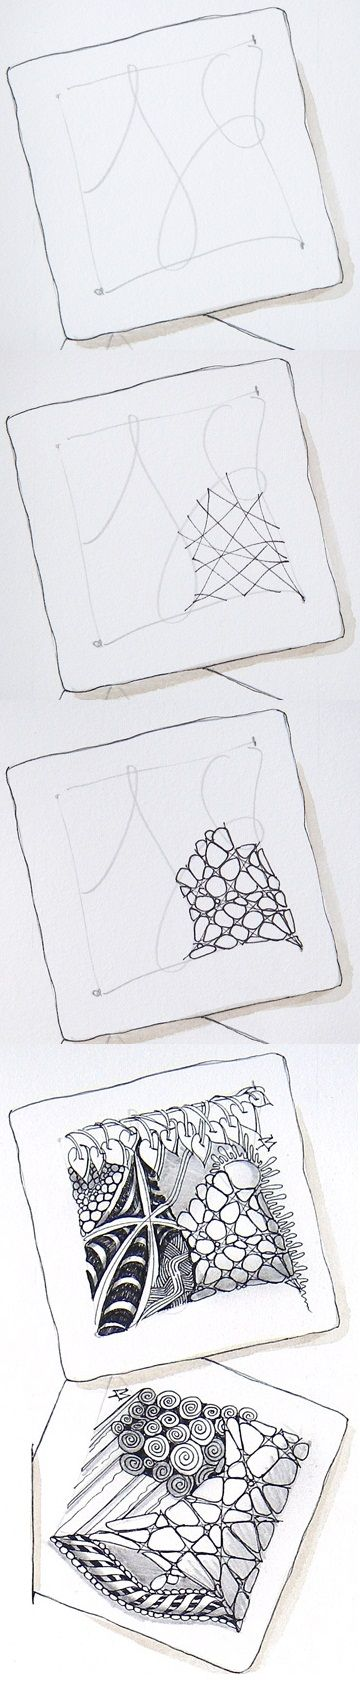 Nzeppel (using random lines, not on a grid), by Zentangle